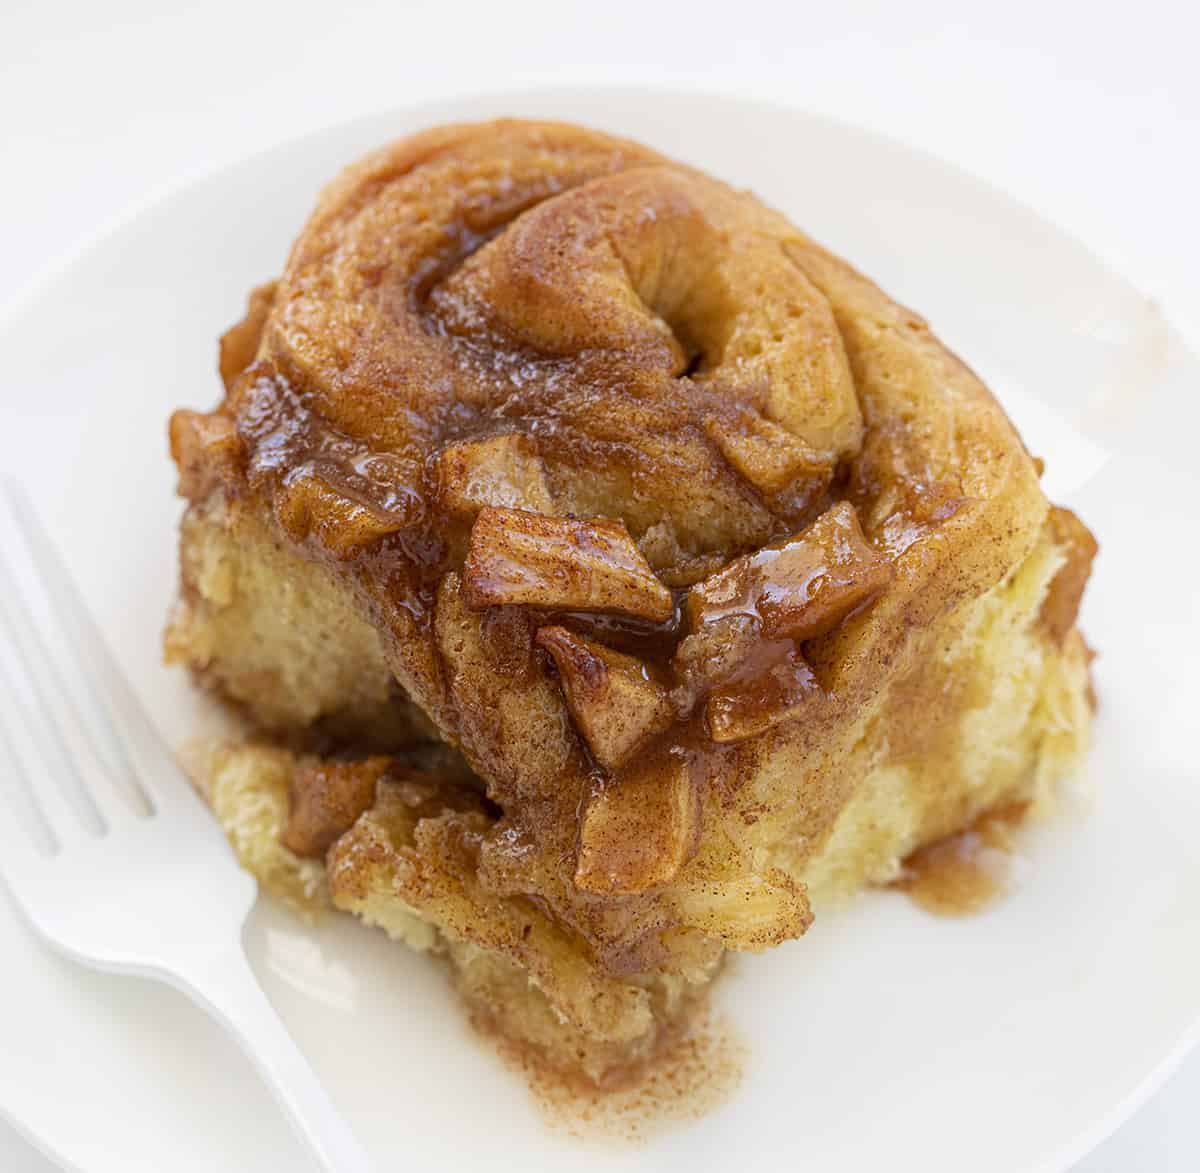 Apple Cinnamon Roll on White Plate with White Fork